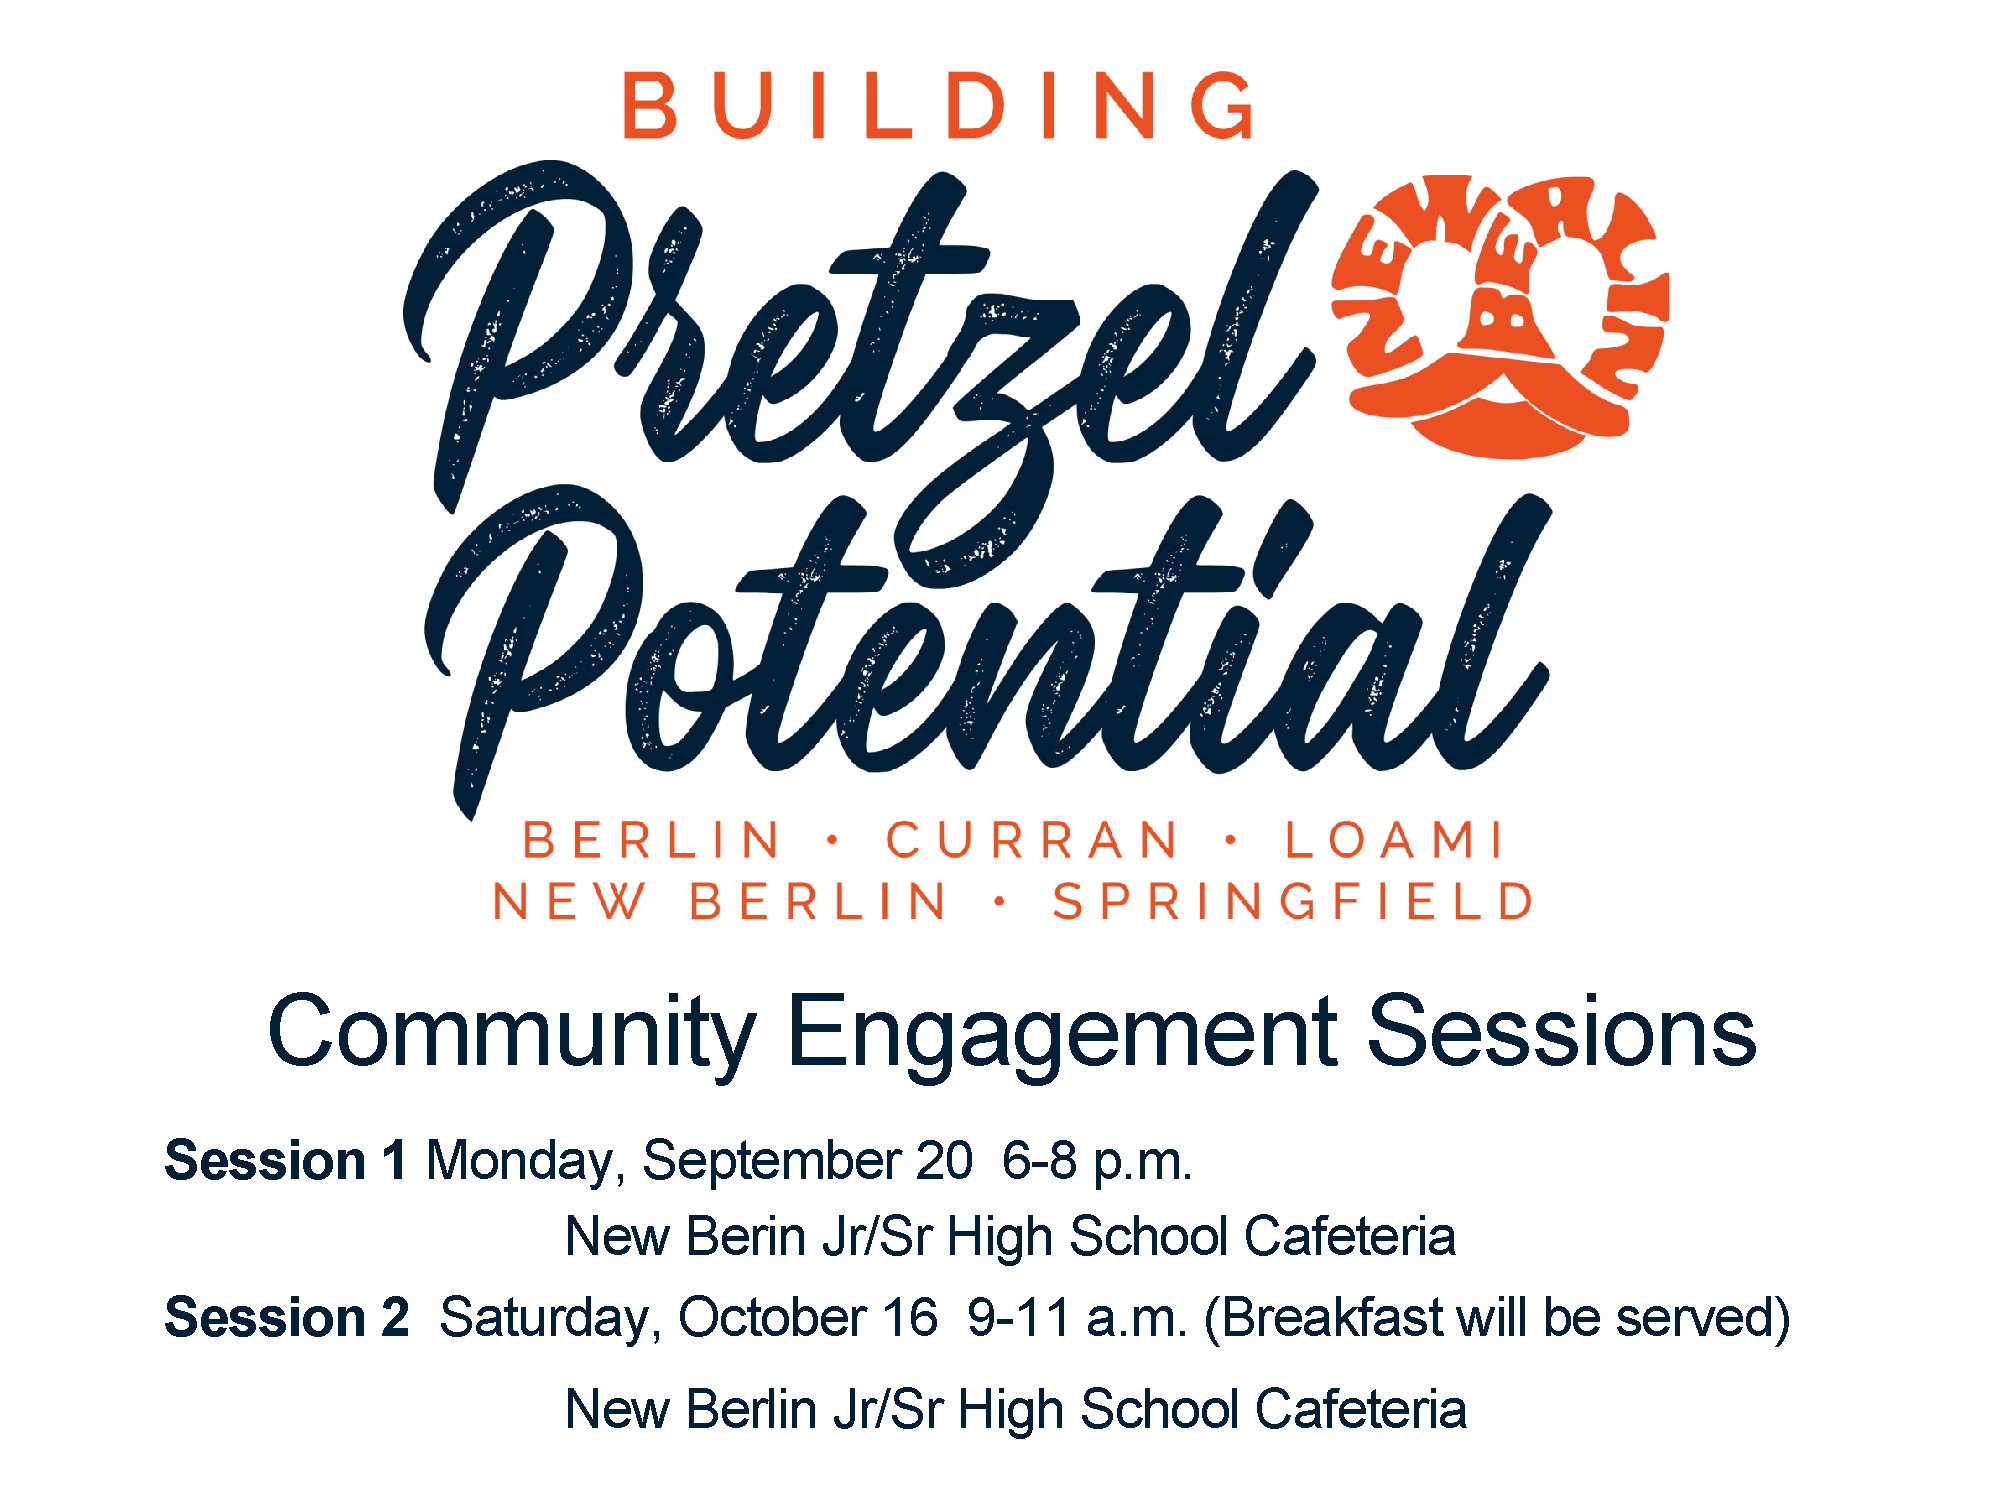 Community Engagement Sessions 1 and 2